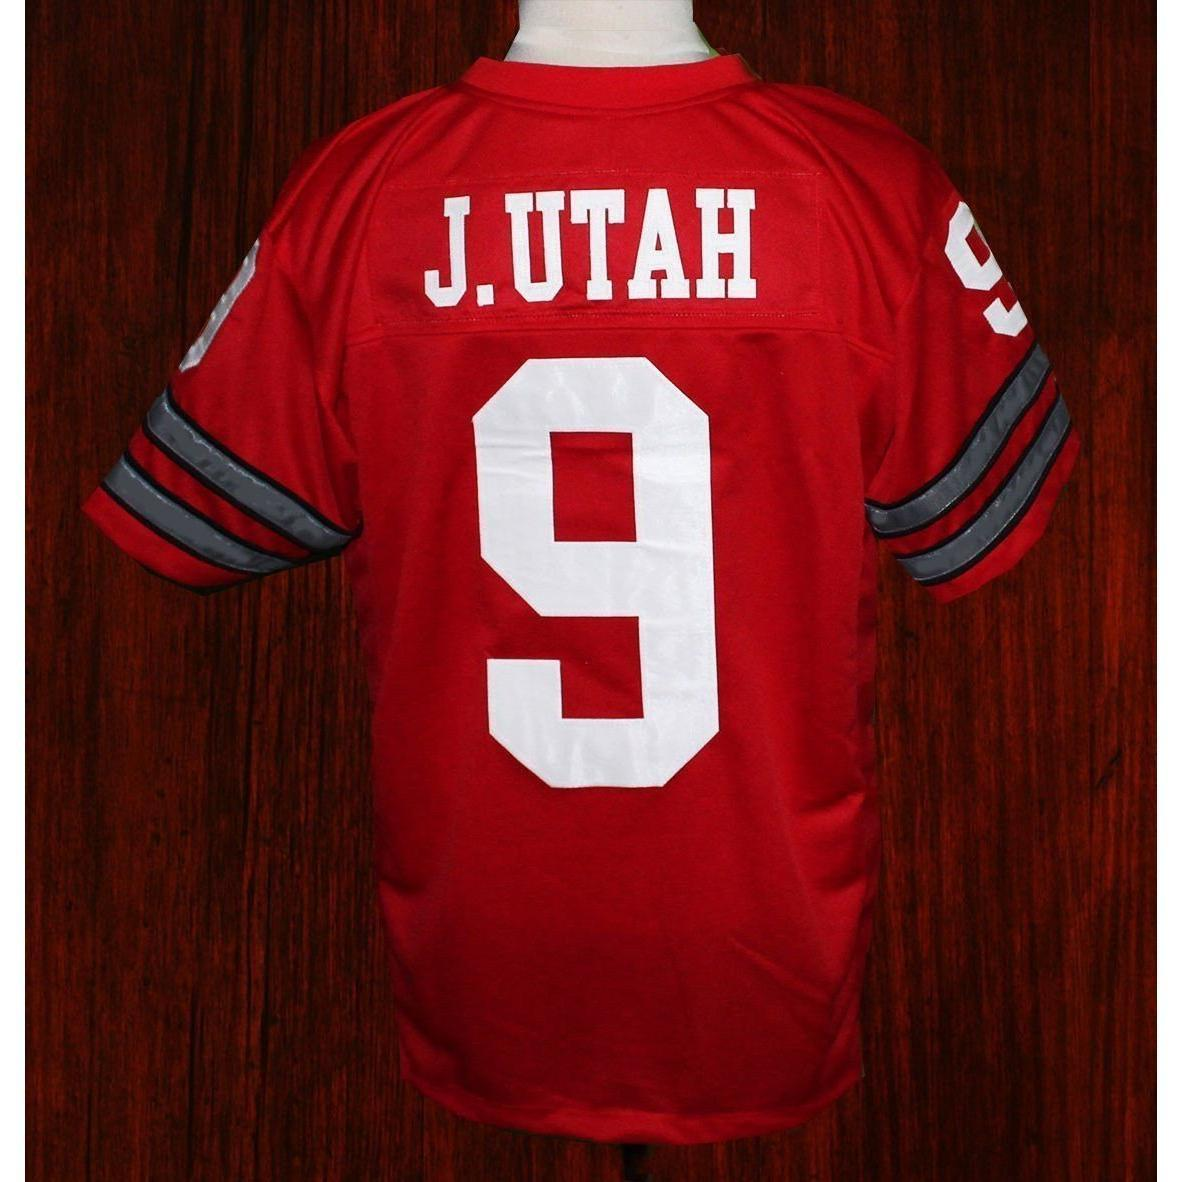 Johnny Utah football jersey